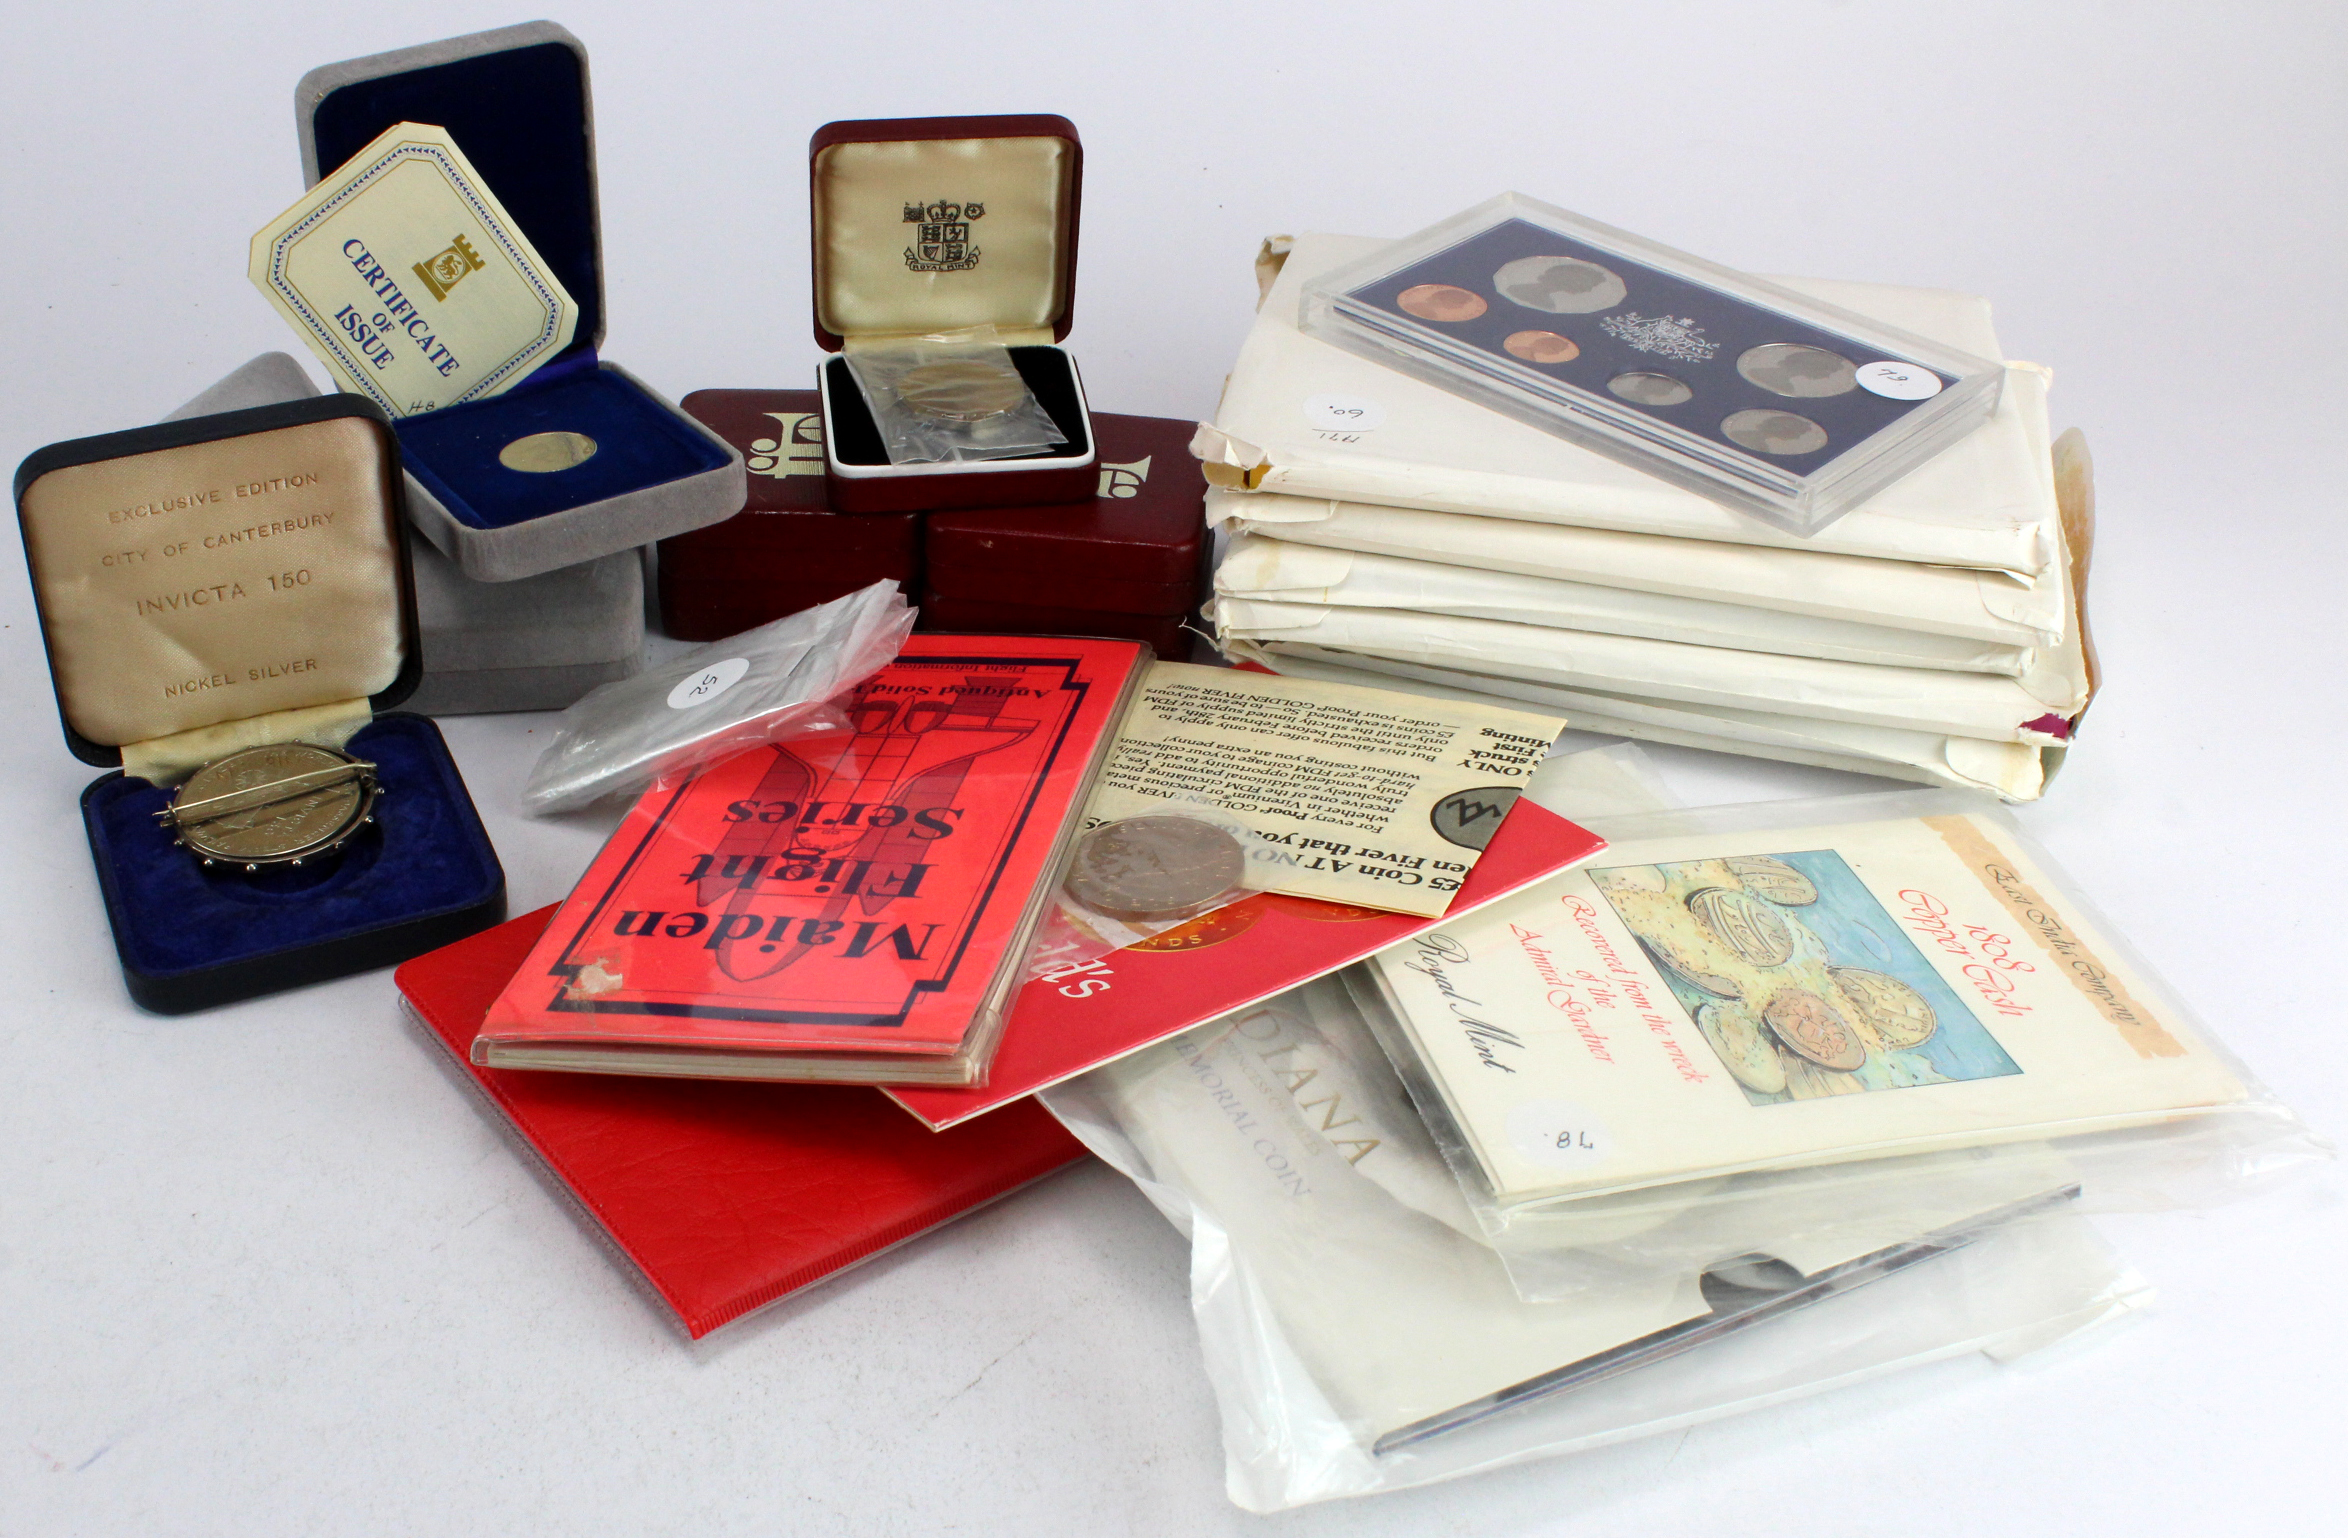 World Proof Sets, presentation packs, boxed coins etc. All seem to be base metal issues struck in